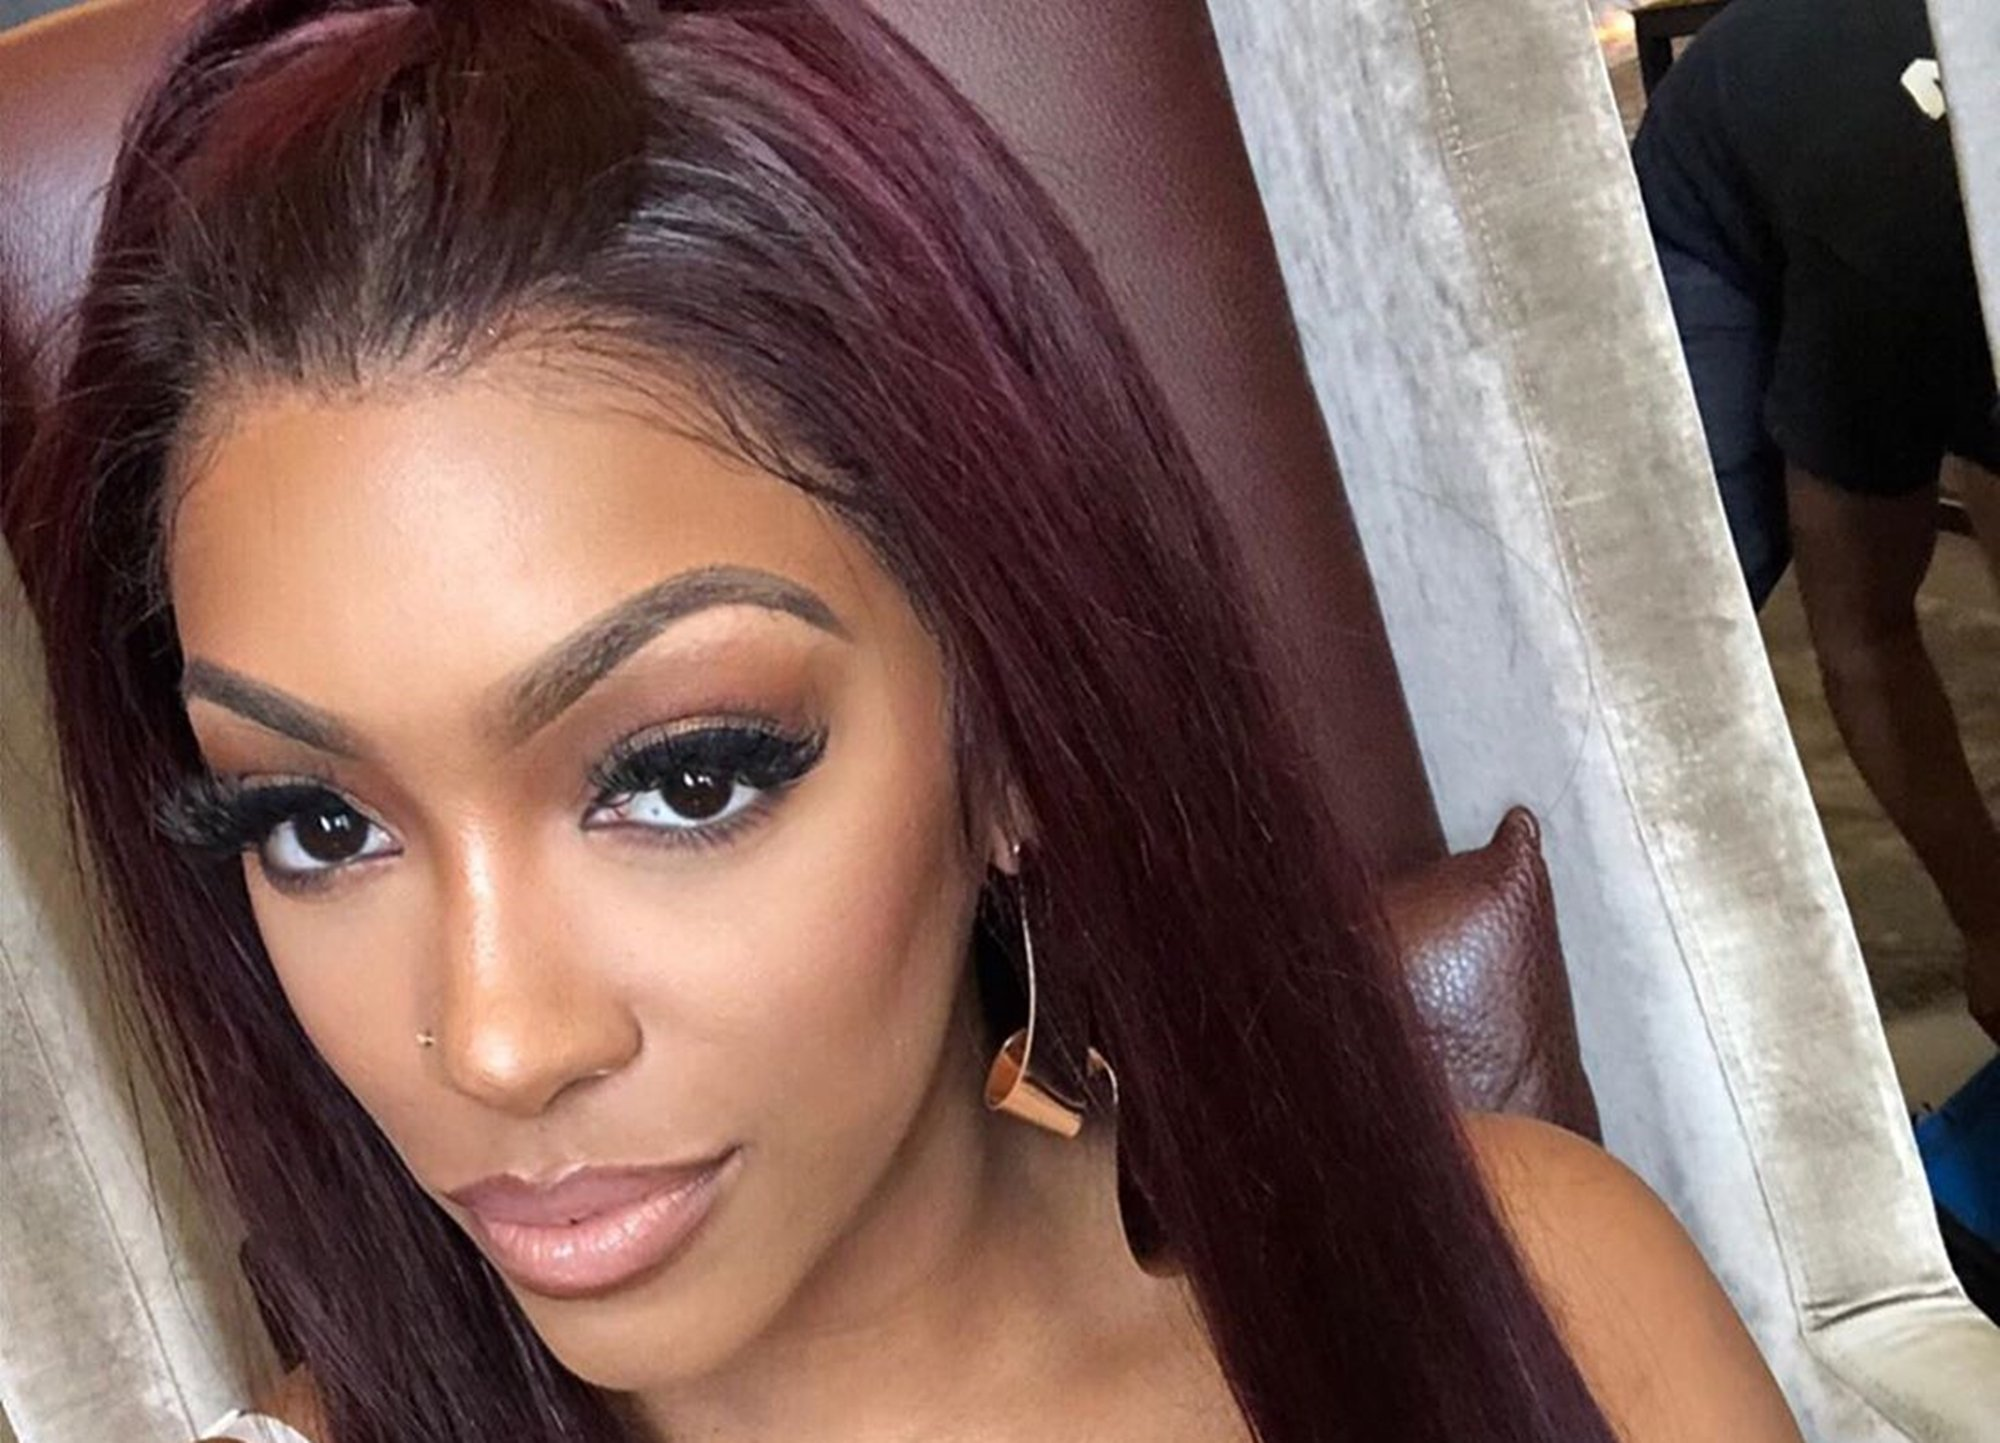 Porsha Williams Is Depressed By The News These Days And Shows Fans What Warms Her Heart These Days